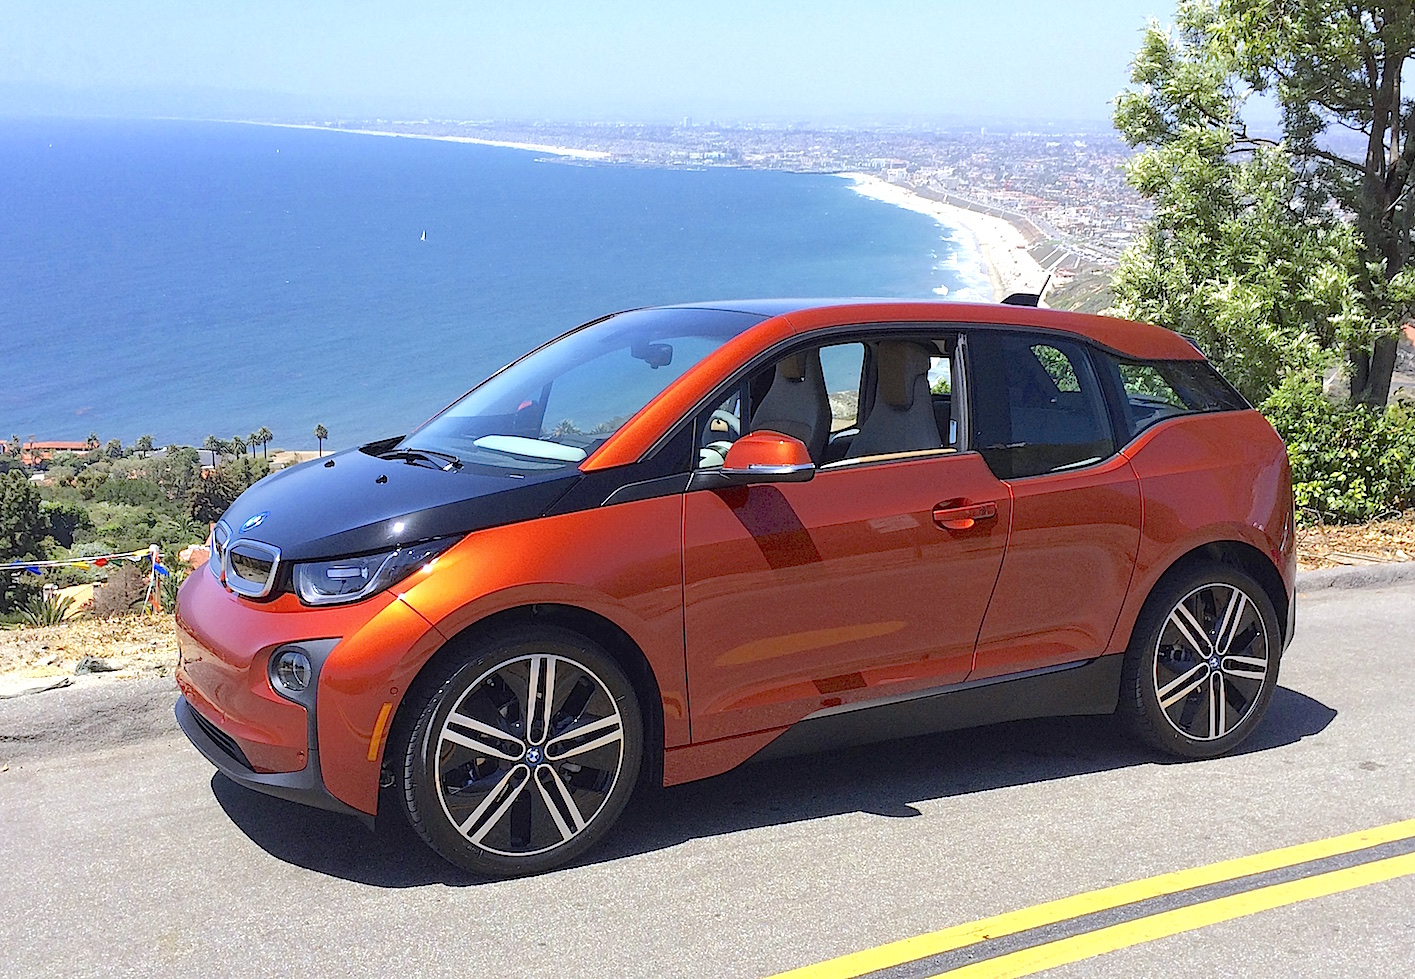 2014 Bmw I3 Review Brave New World Of Electric Luxury Cars